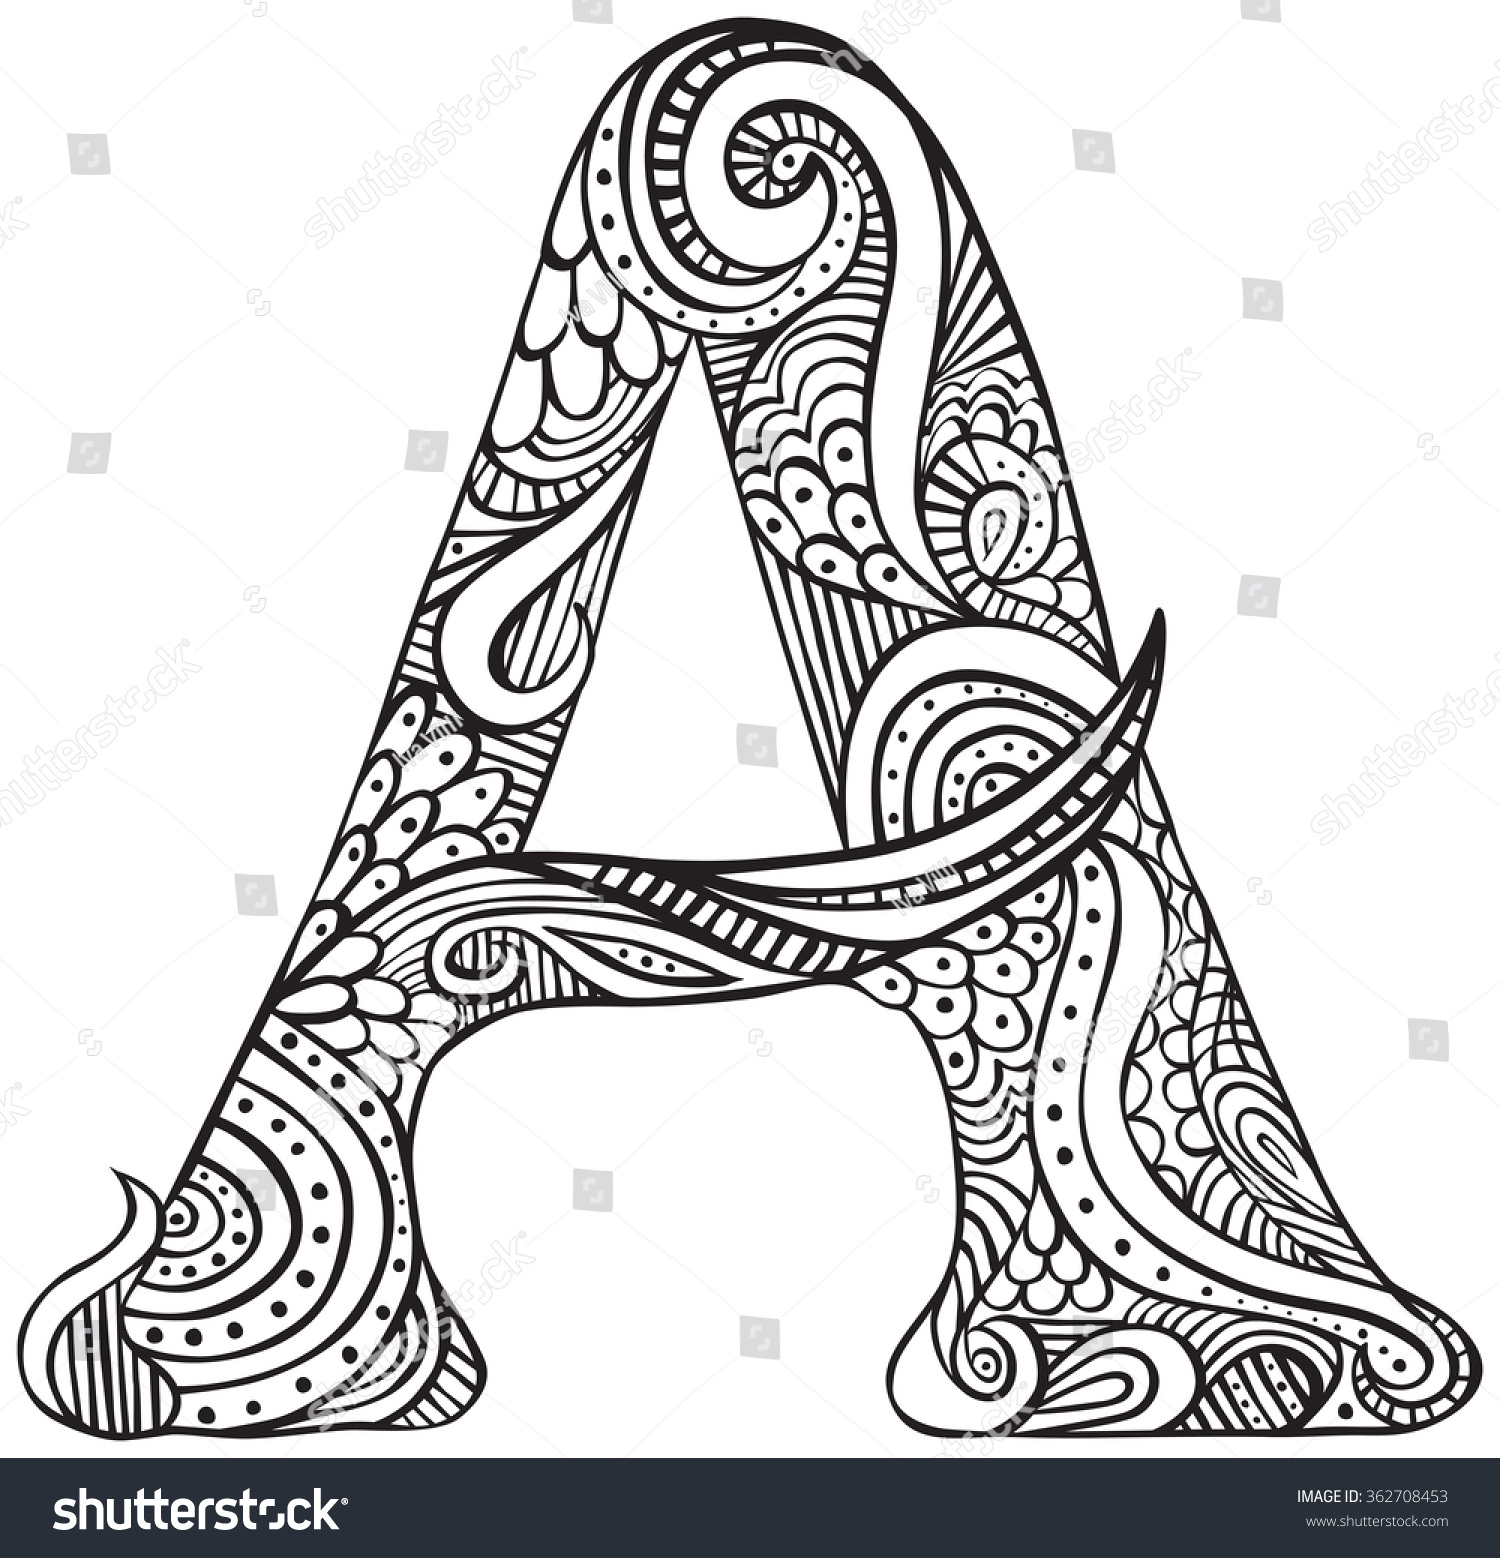 Hand Drawn Capital Letter Black Coloring Stock Vector